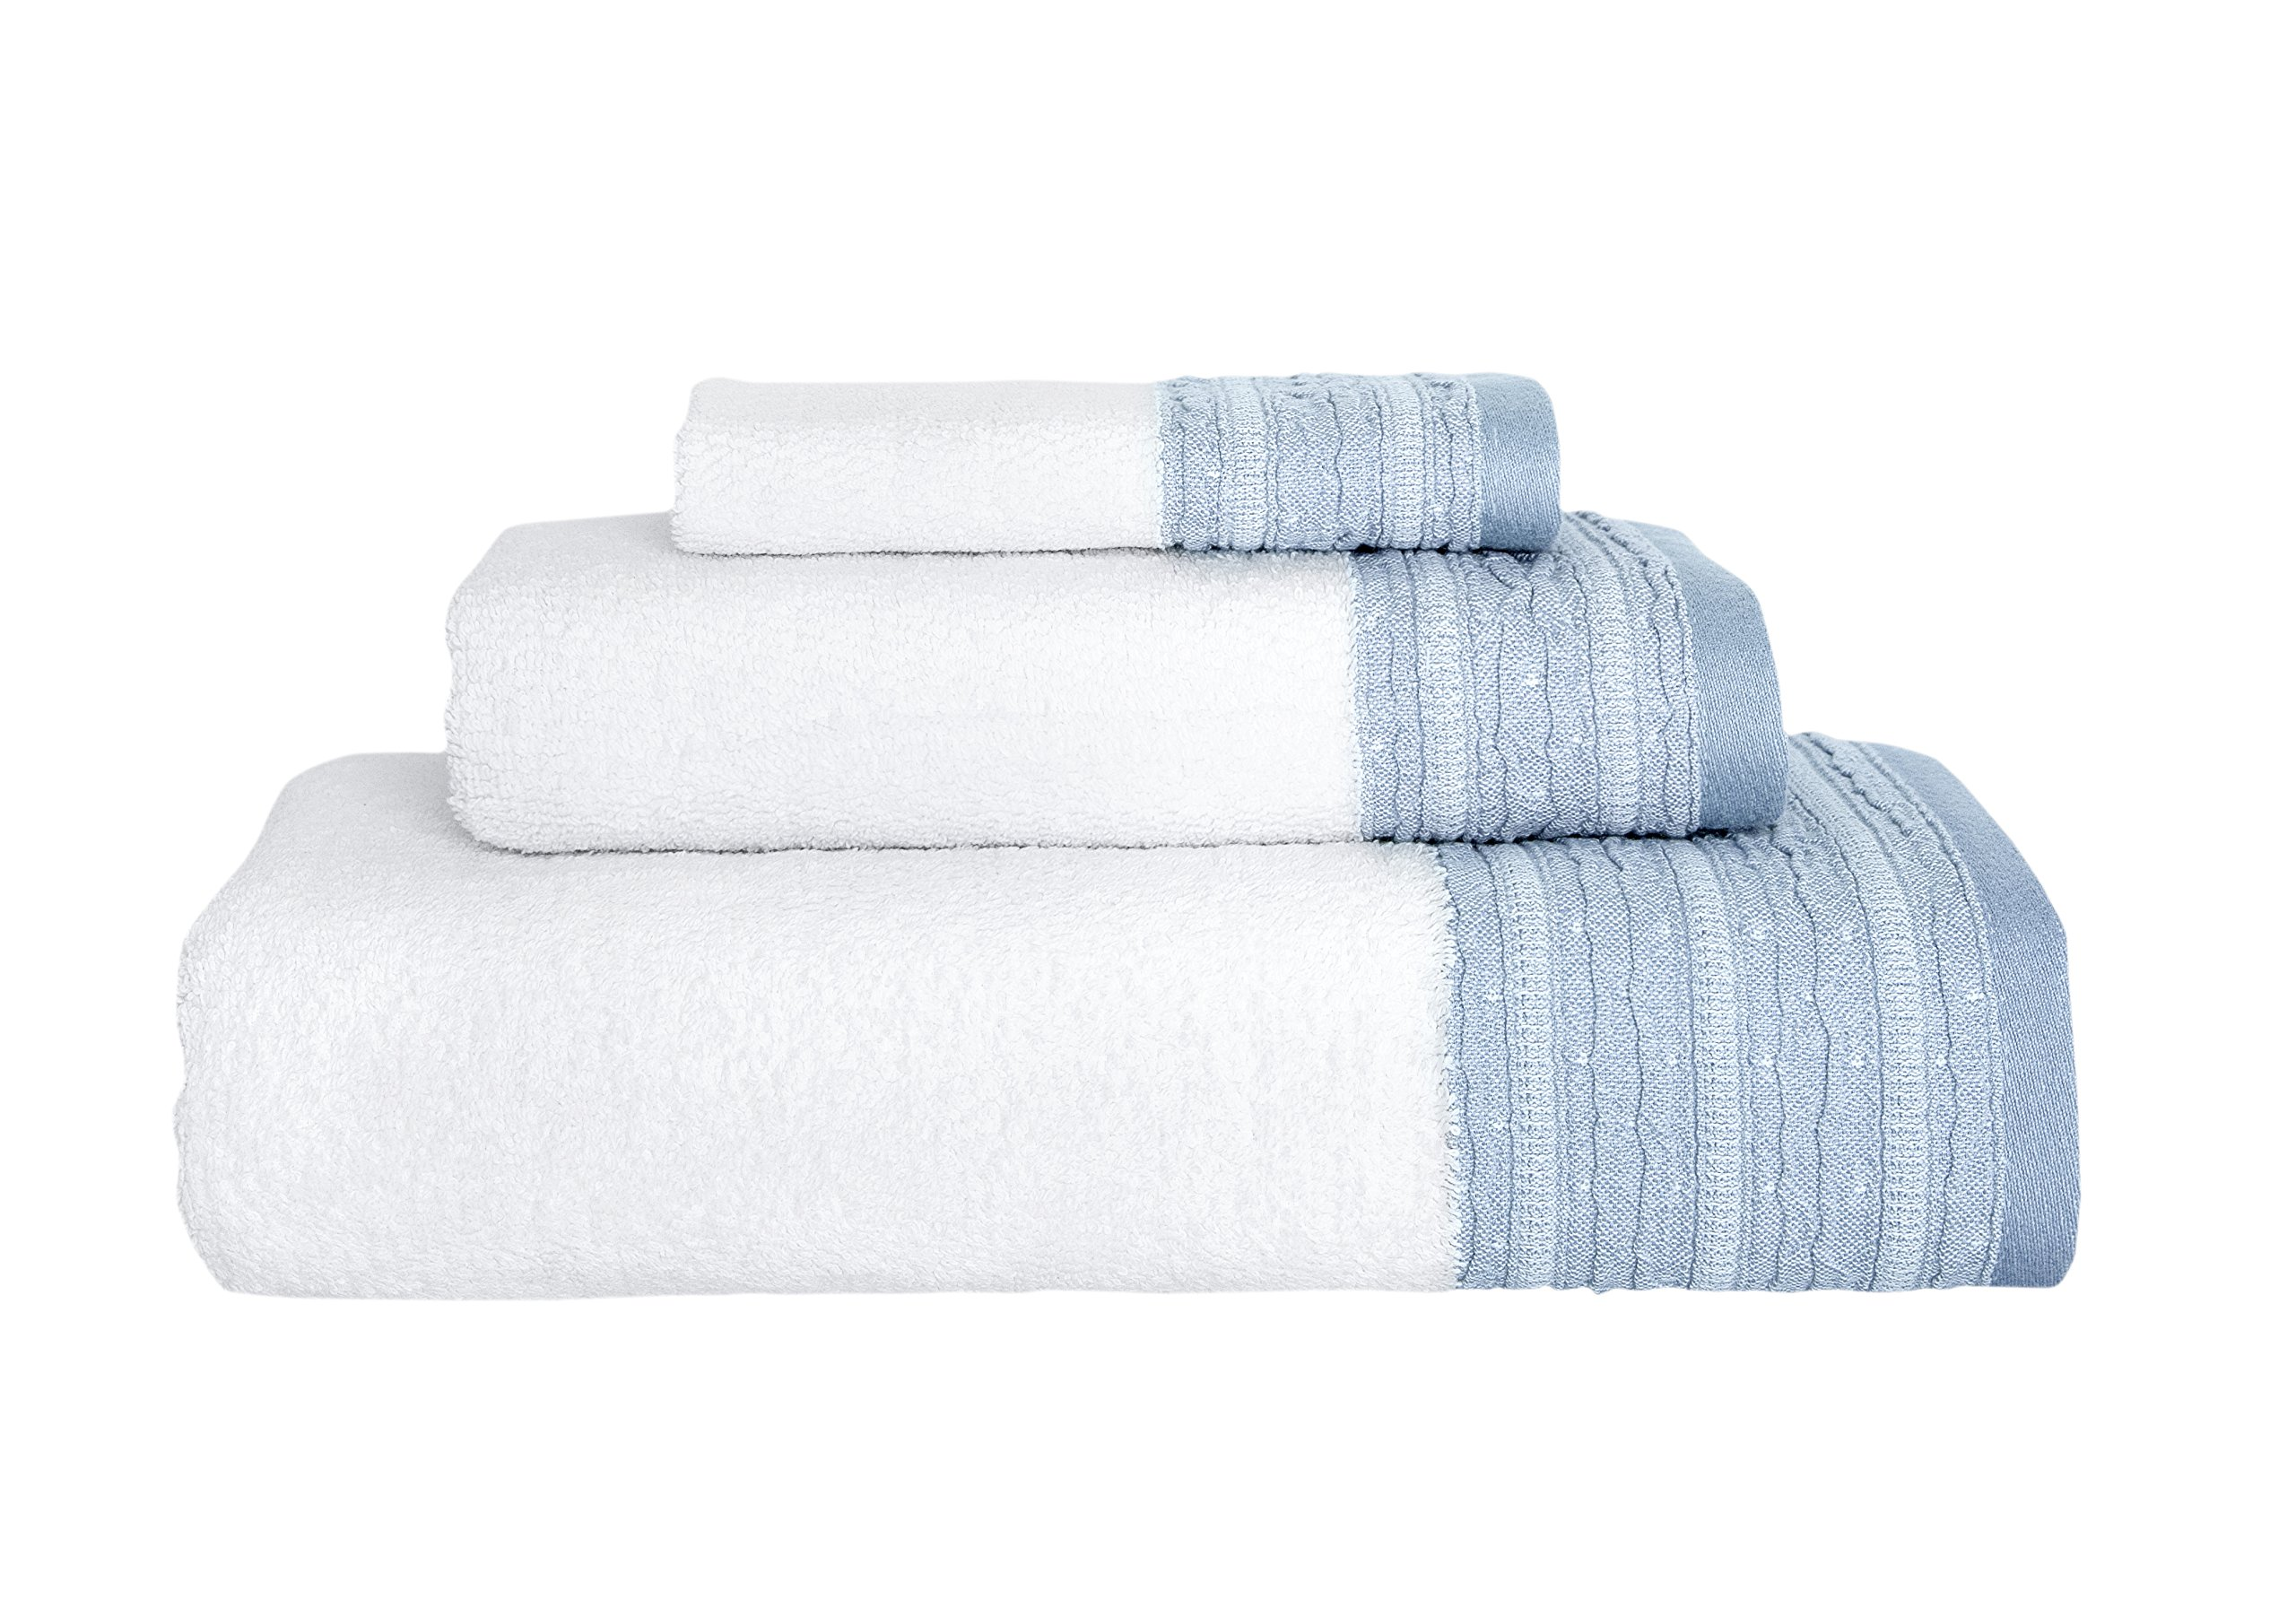 Garen 3-Piece Turkish Cotton Towel Set With Decorative Dobby - Ultra Soft Texture With Premium Absorbency - Perfect For Daily Use Or Home Decor (600 GSM) (Sky Blue)